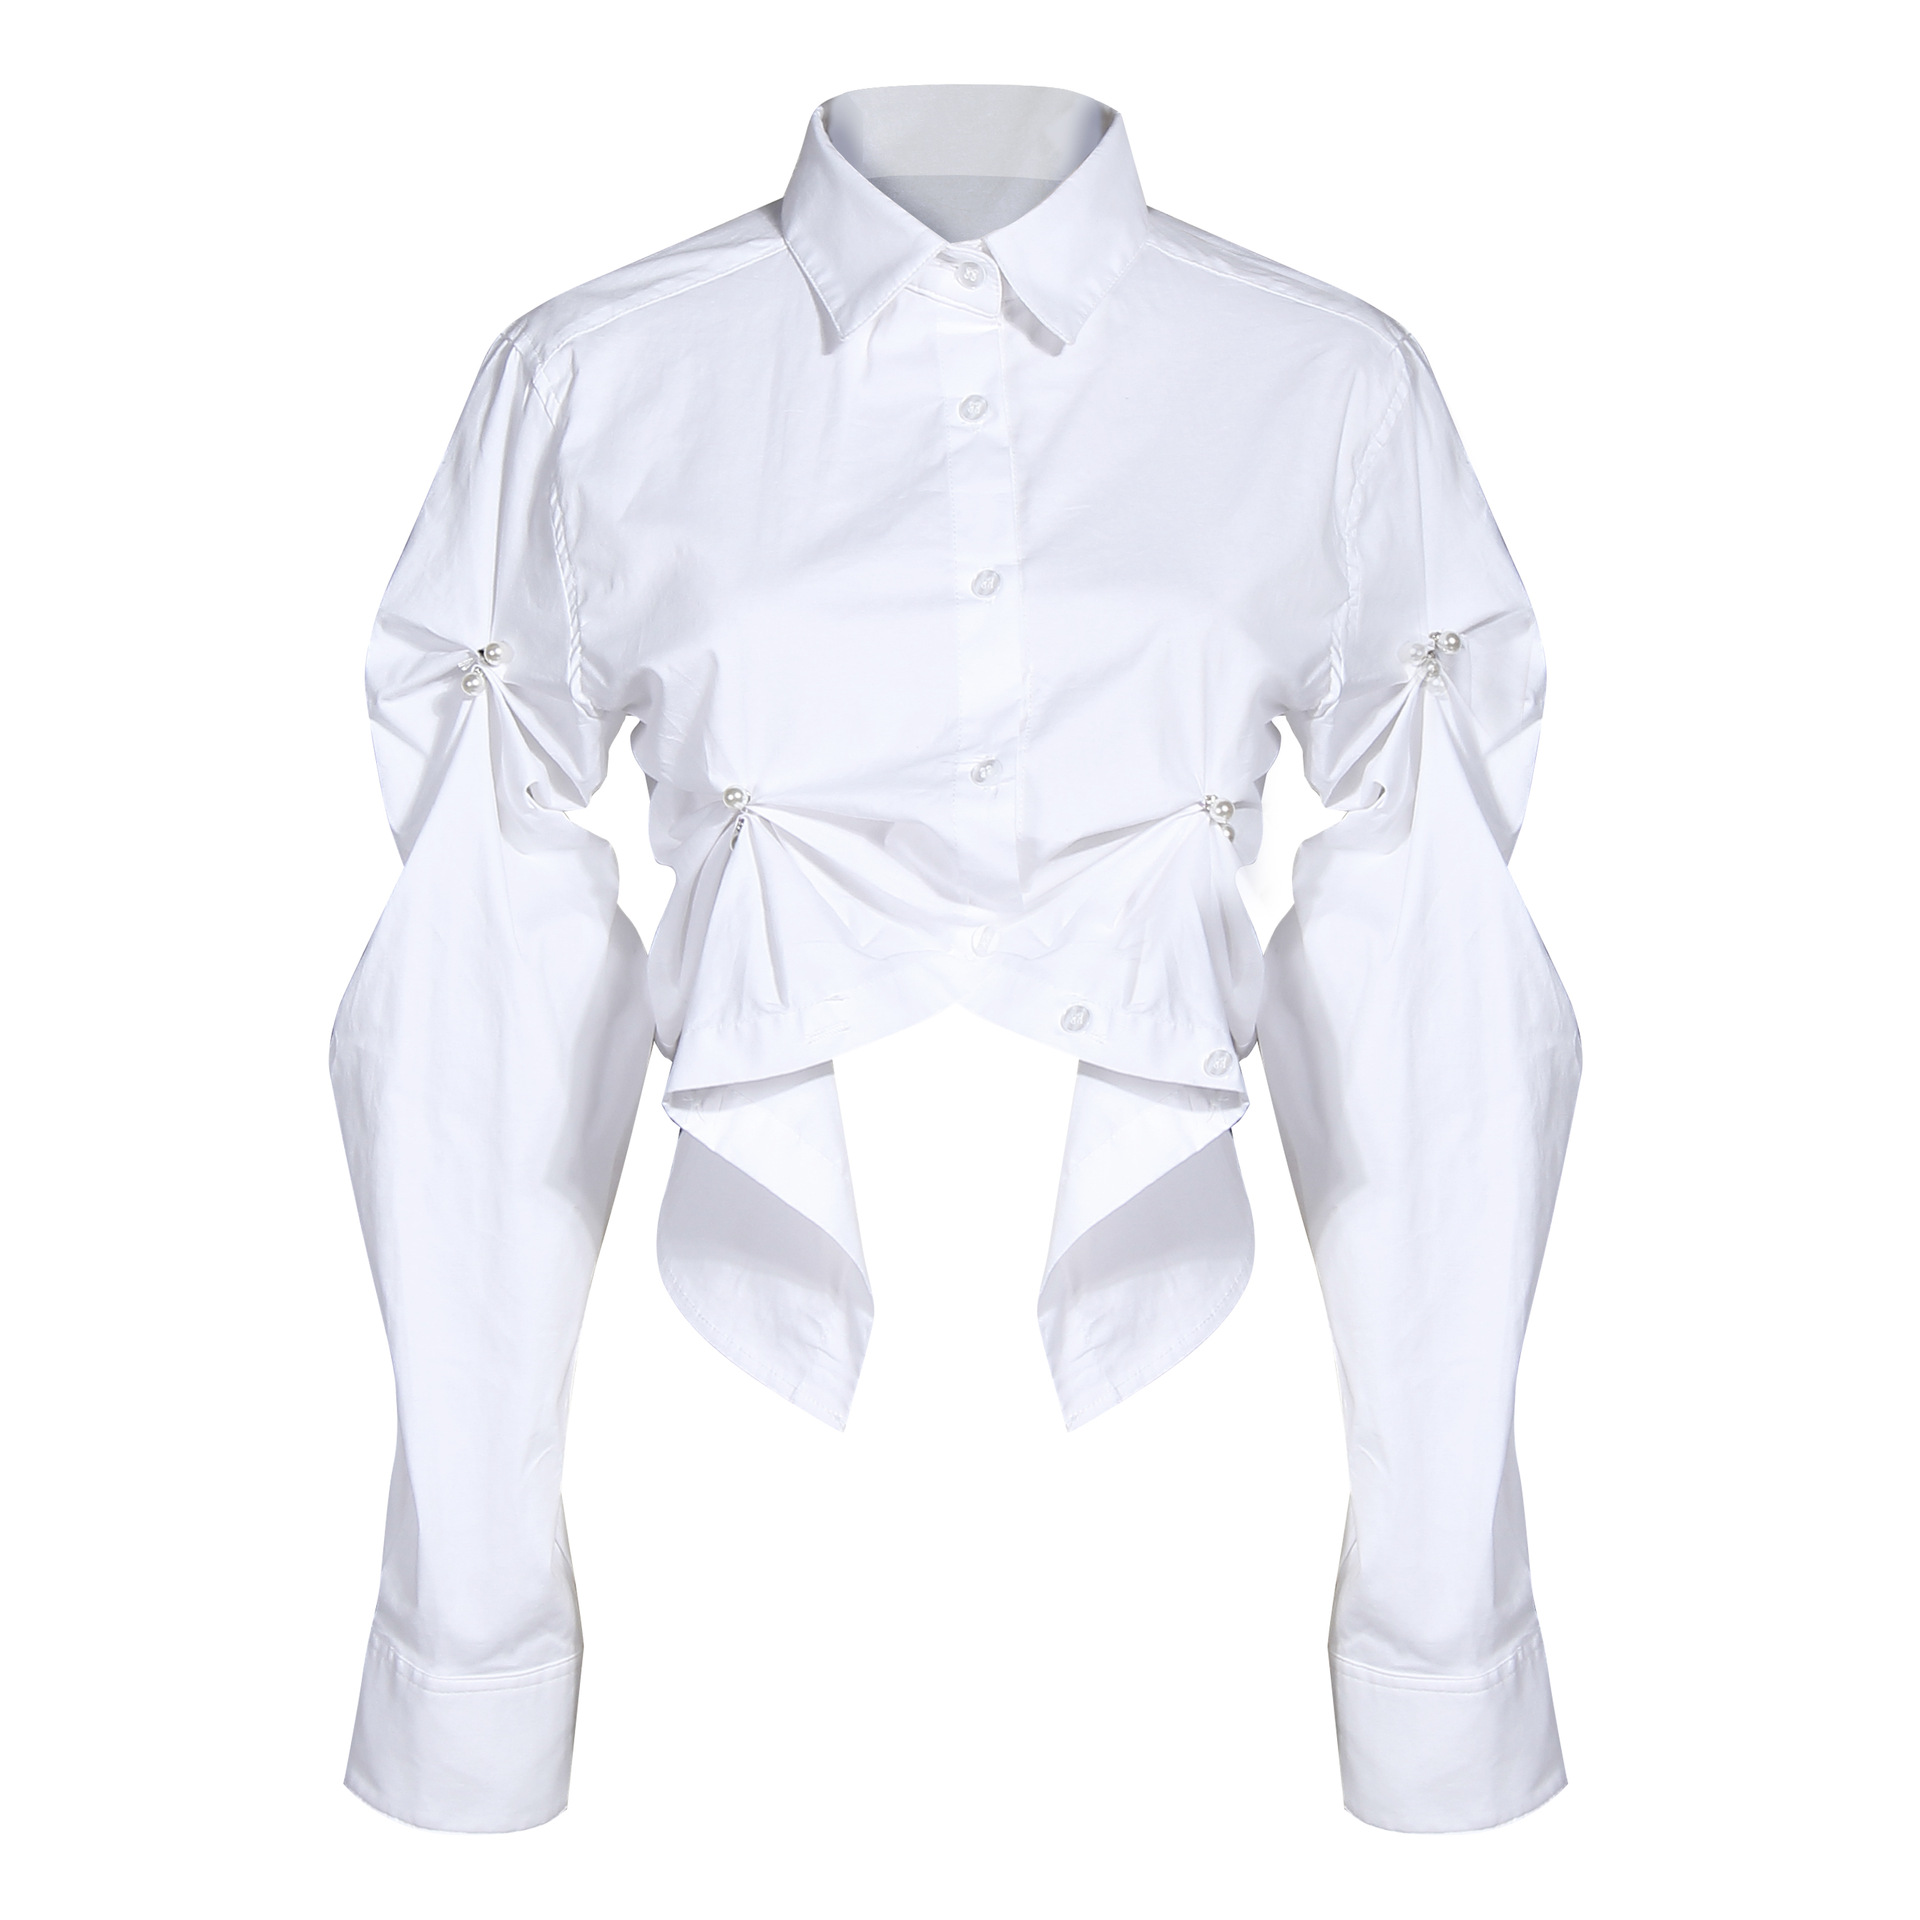 2020 spring new arrivals fashionable design women sewn pearl sleeve shirt pleated long sleeves <strong>cotton</strong> <strong>ladies</strong> top <strong>blouse</strong>